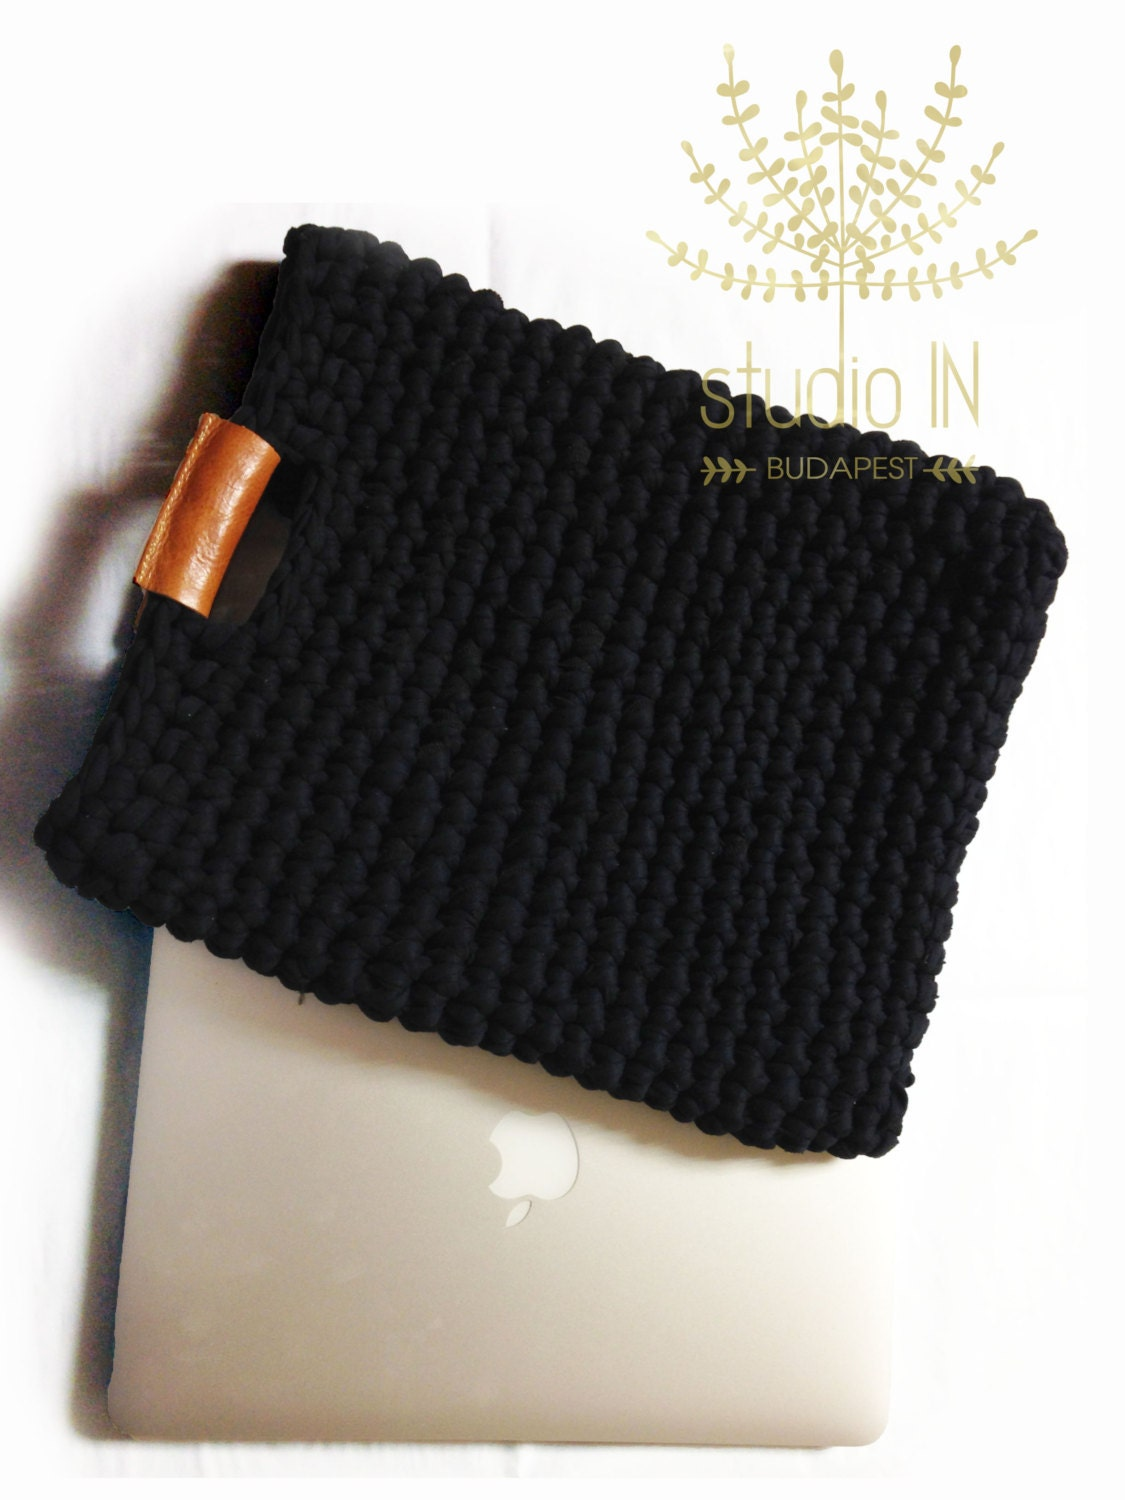 Crochet Bag Handle Cover Pattern : Crochet bag with real leather handles crochet laptop case